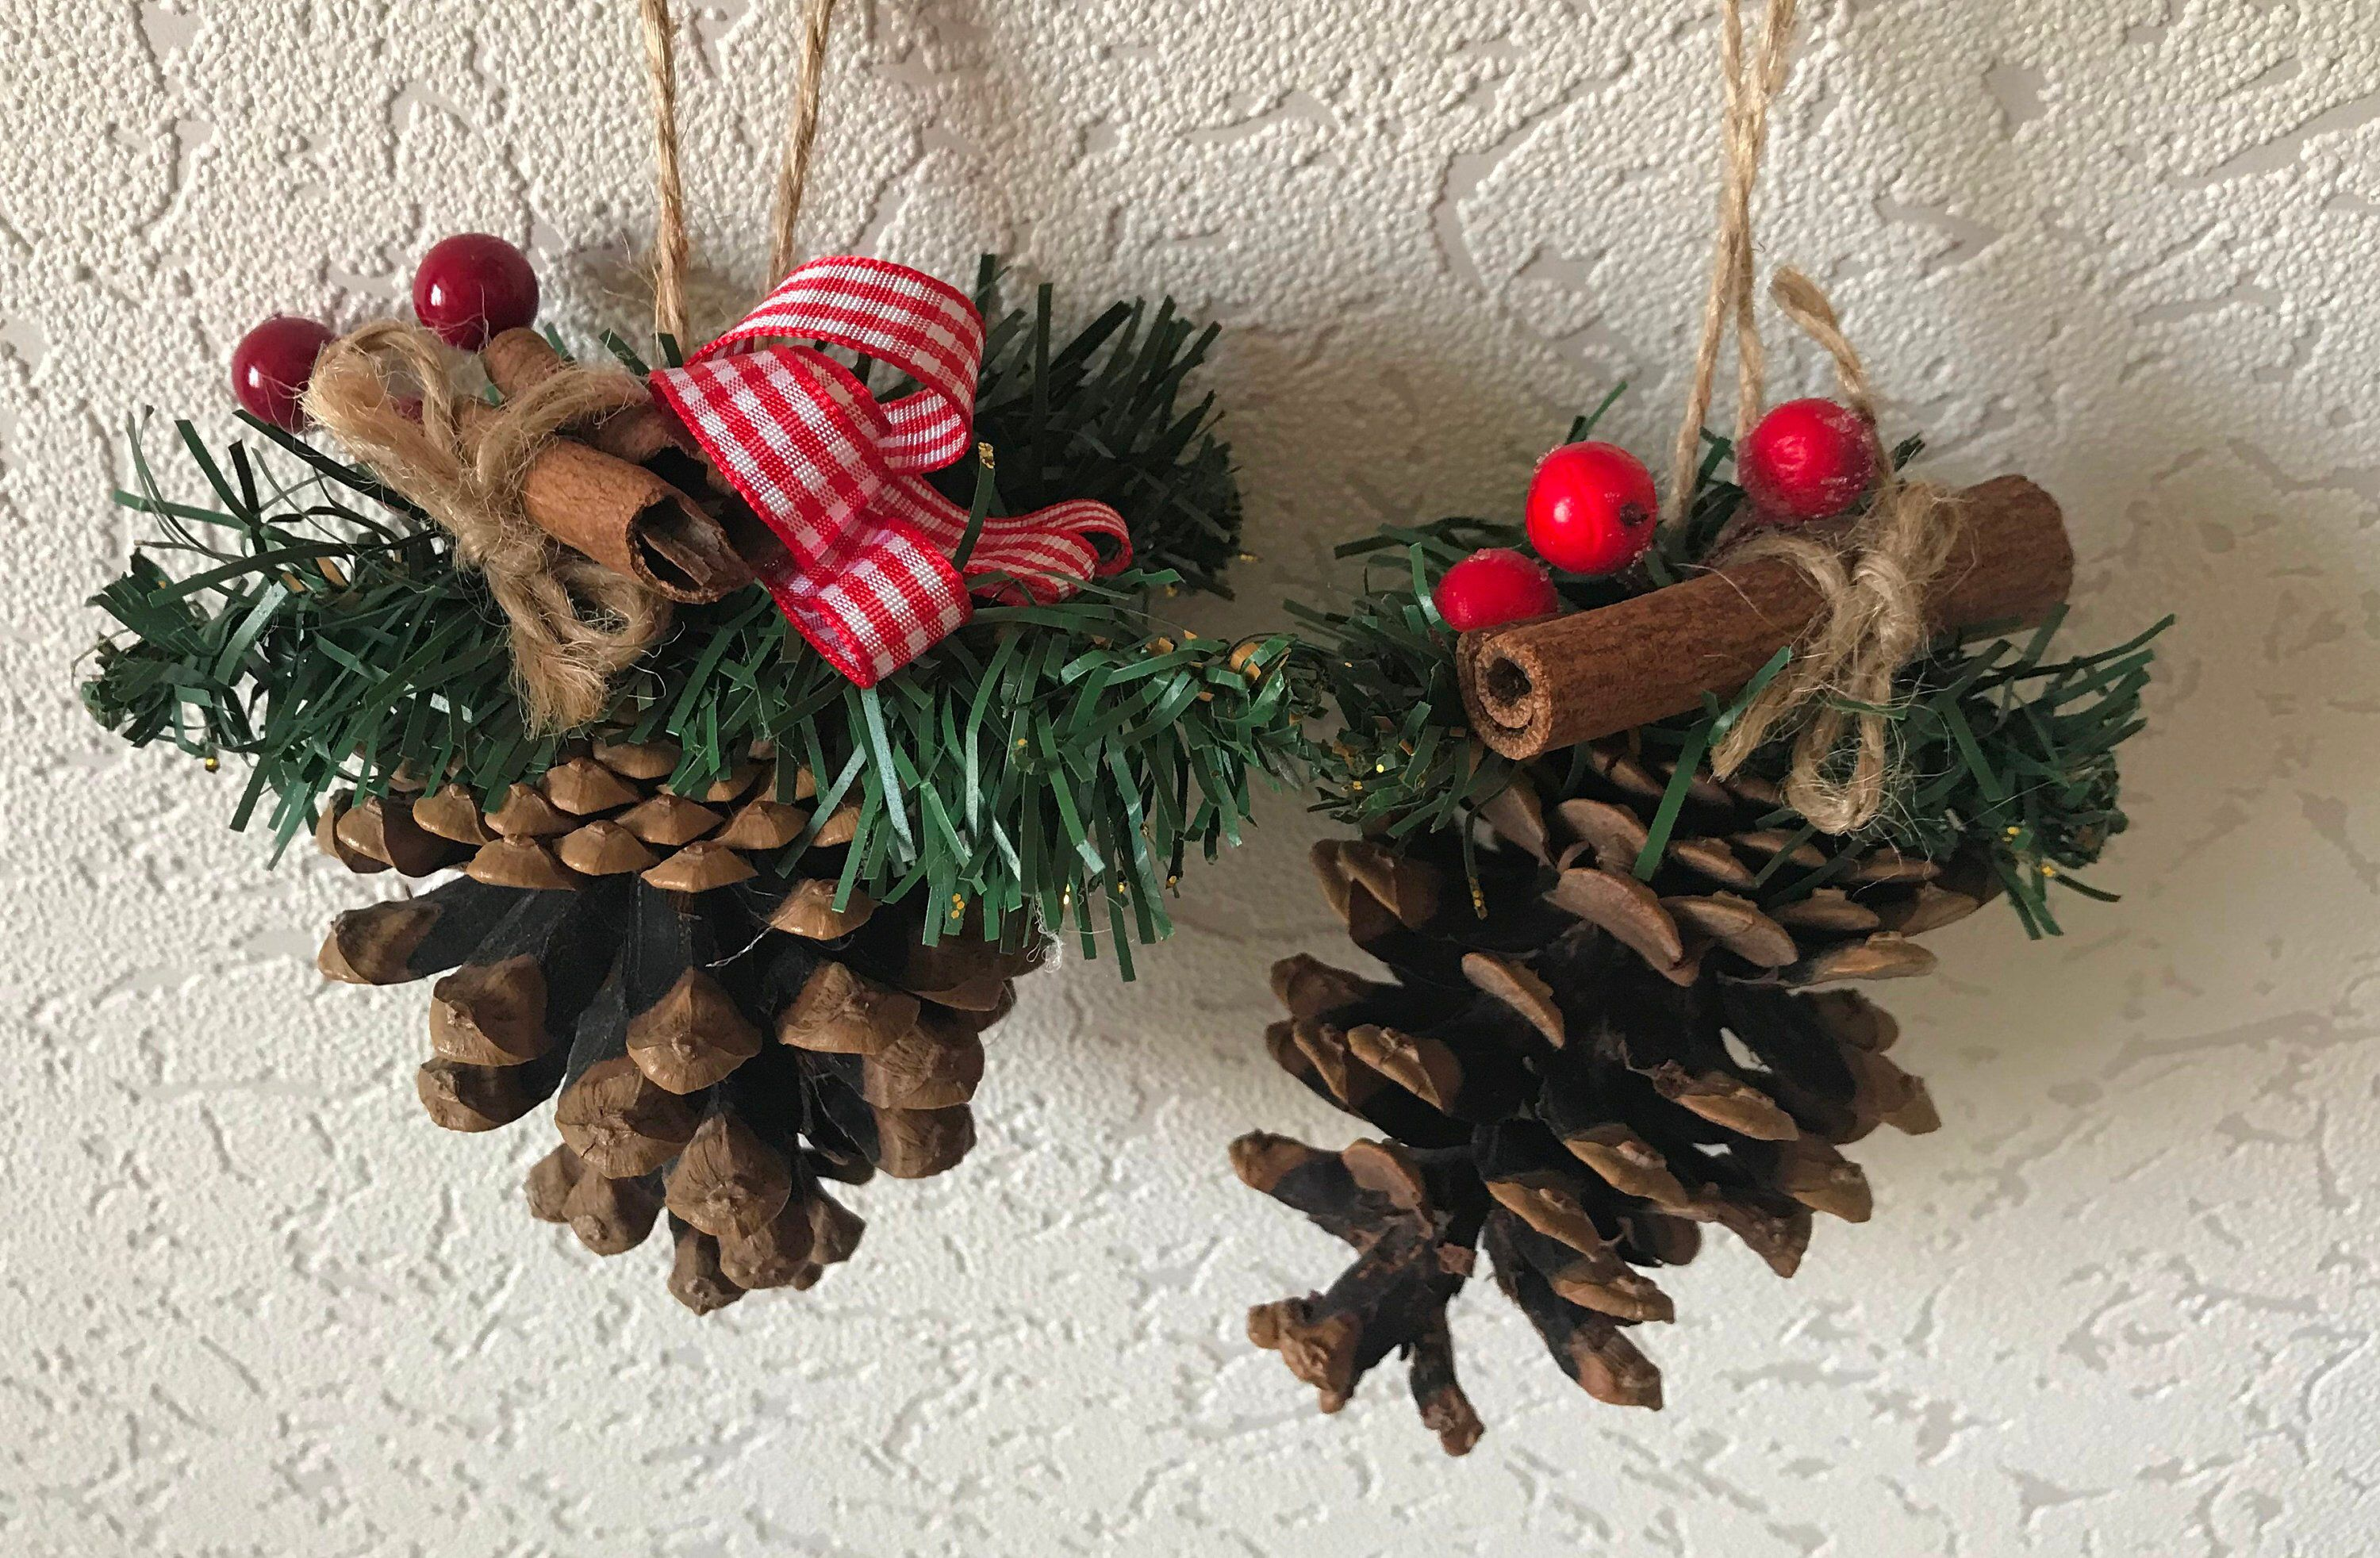 Excited To Share This Item From My Etsy Shop Set Of 2 Pine Cone Christmas Diy Christmas Tree Ornaments Pinecone Crafts Christmas Christmas Decorations Rustic